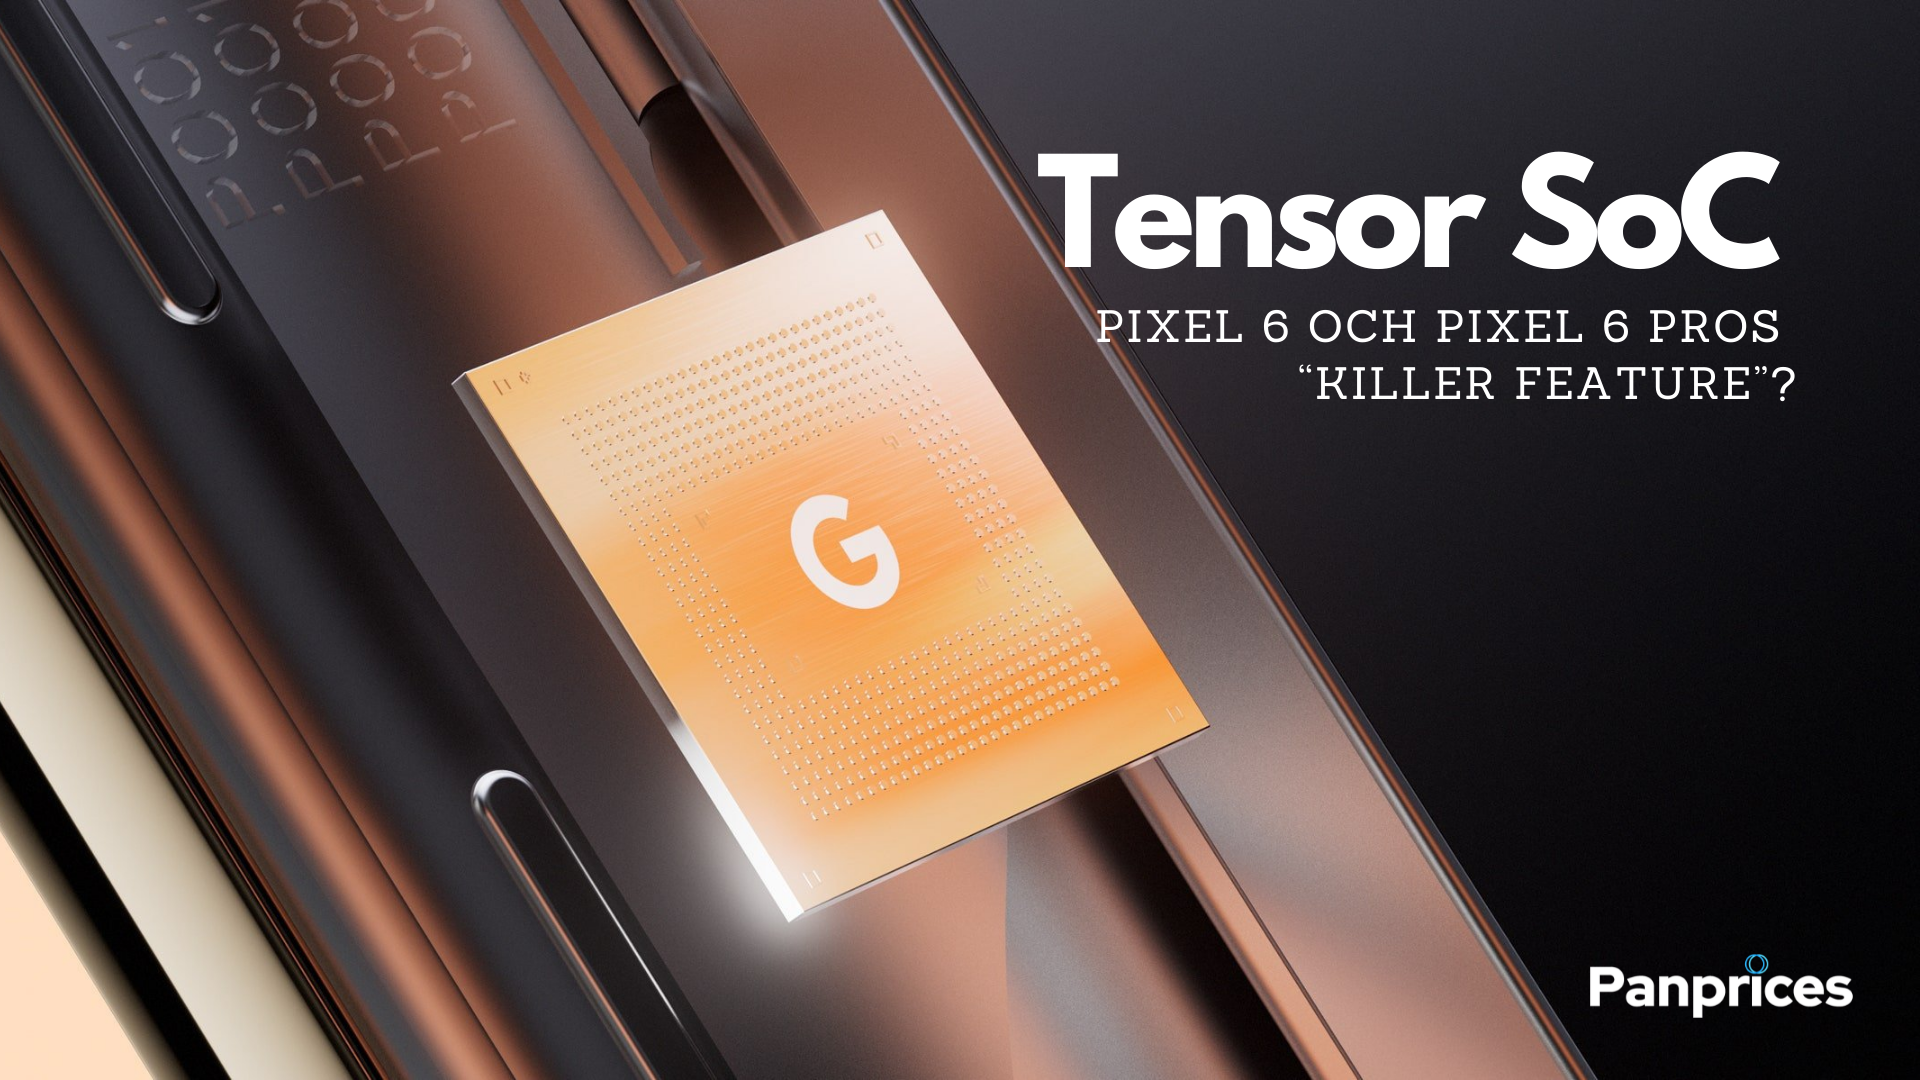 Tensor SoC: The killer feature of Pixel 6 and Pixel 6 Pro?